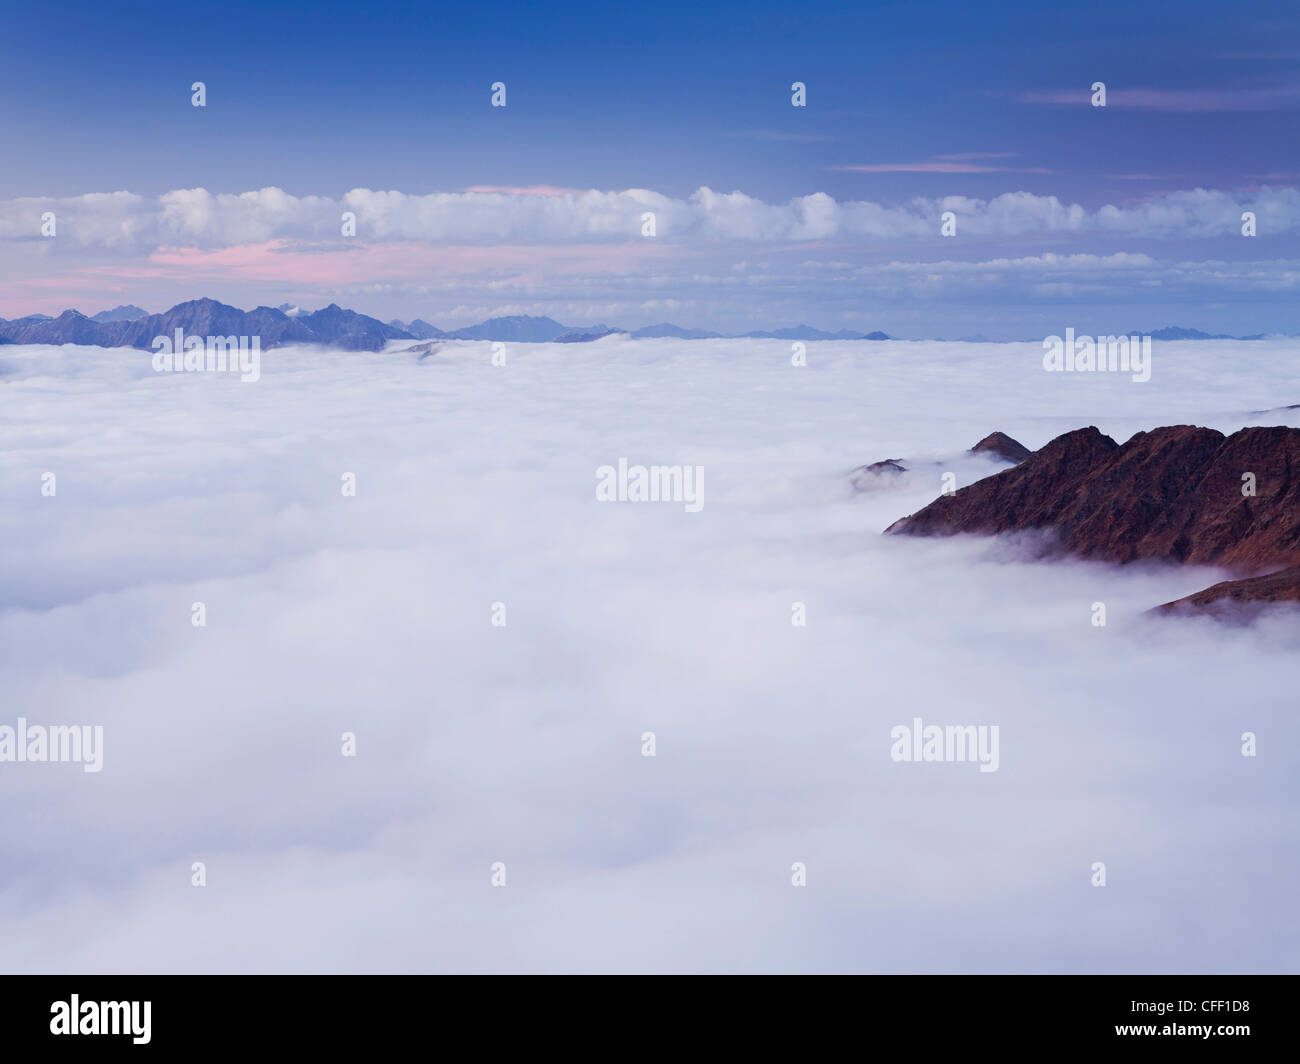 View from Monte Scorluzzo onto sea of clouds at sunset, Stilfser Hock National Park, Lombardy, Italy, Europe - Stock Image